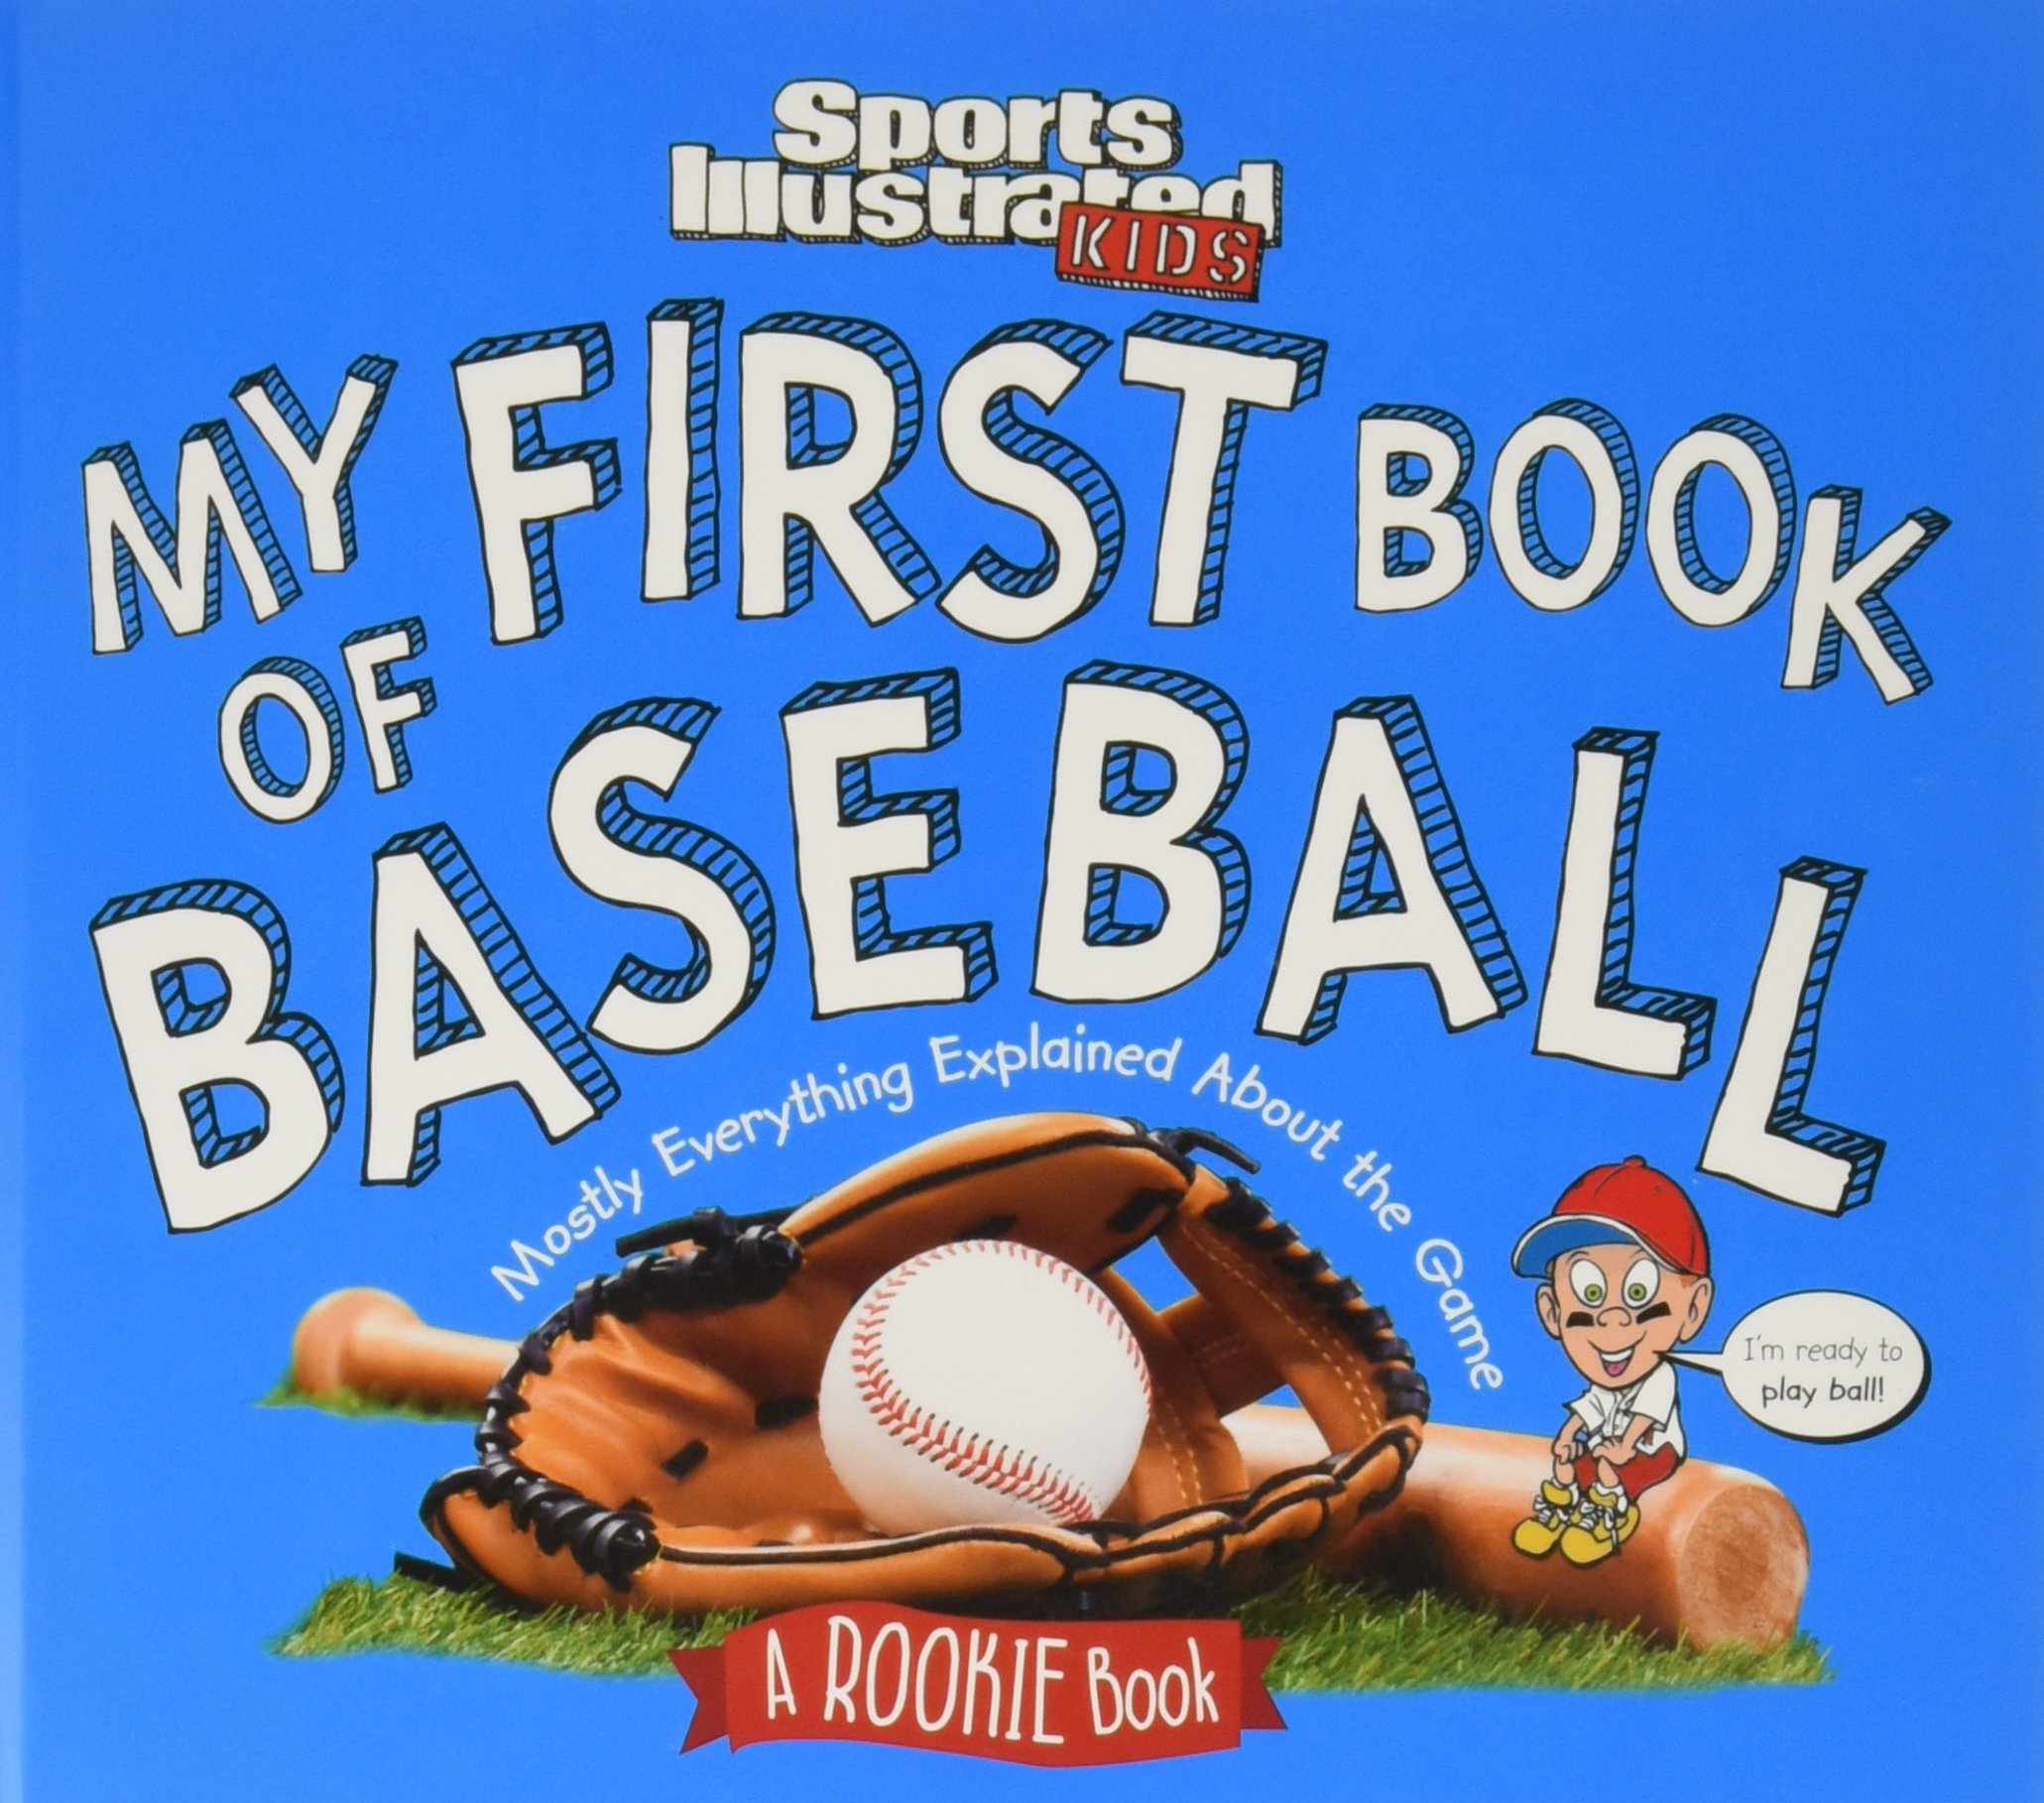 a253ed6496 My First Book of Baseball: A Rookie Book (A Sports Illustrated Kids Book)  Hardcover – April 5, 2016